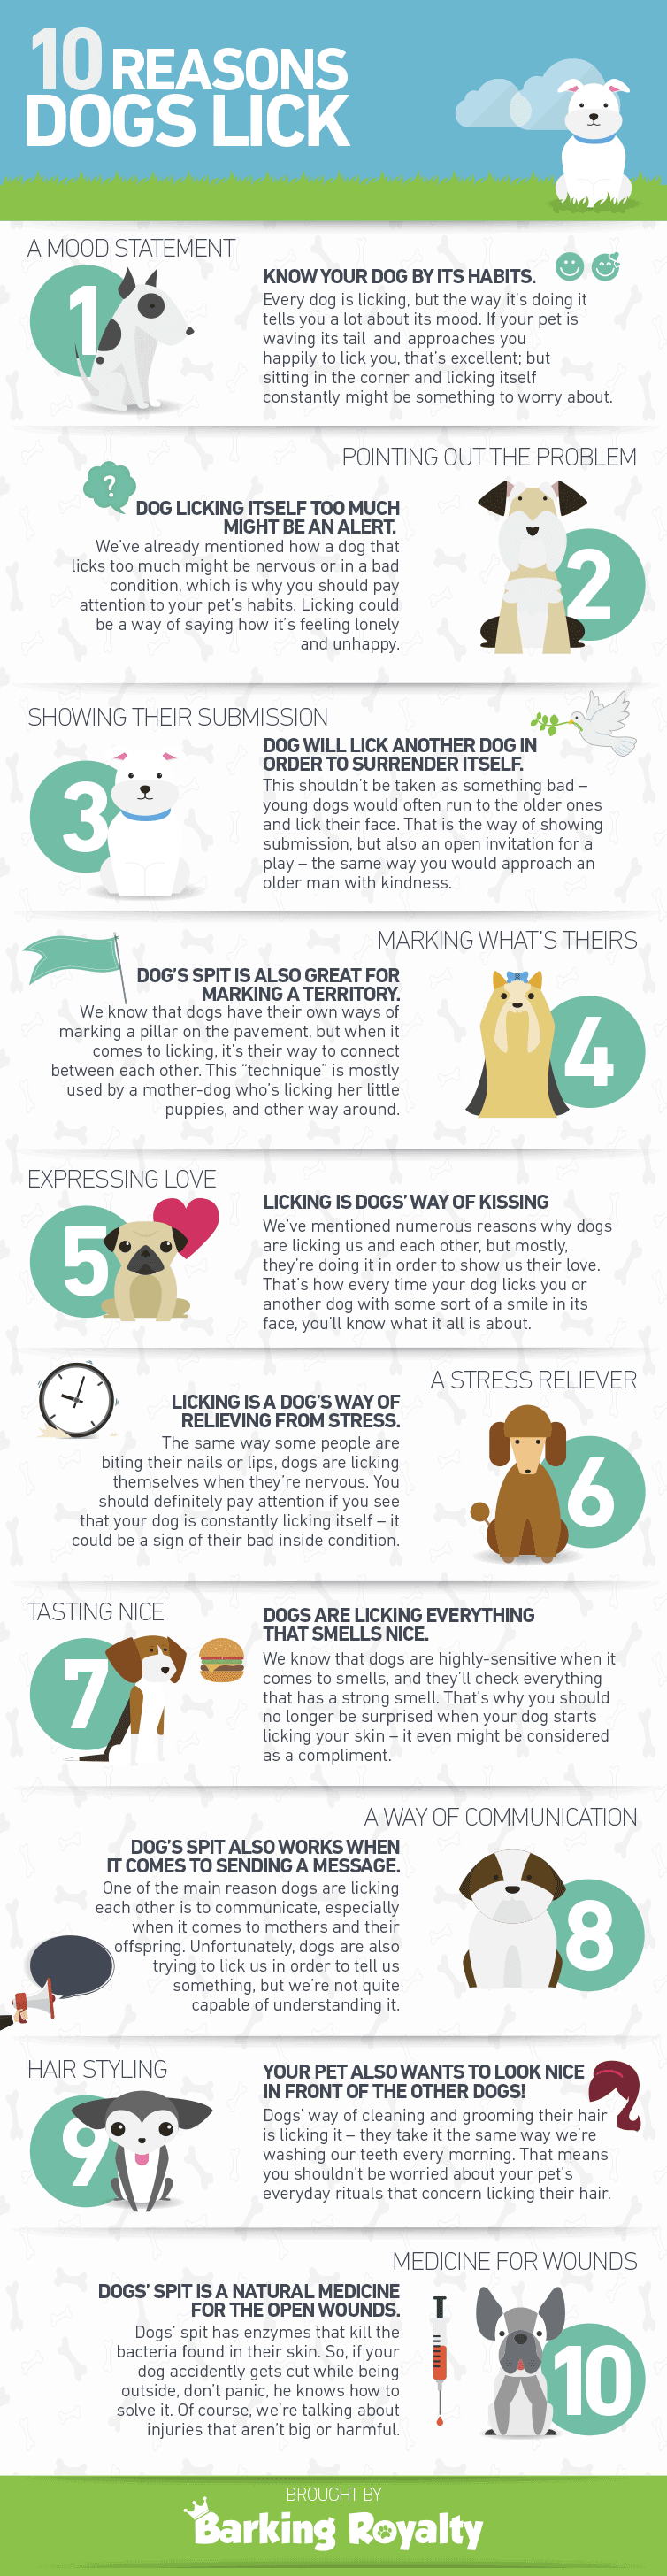 graphic 10 reasons dogs lick